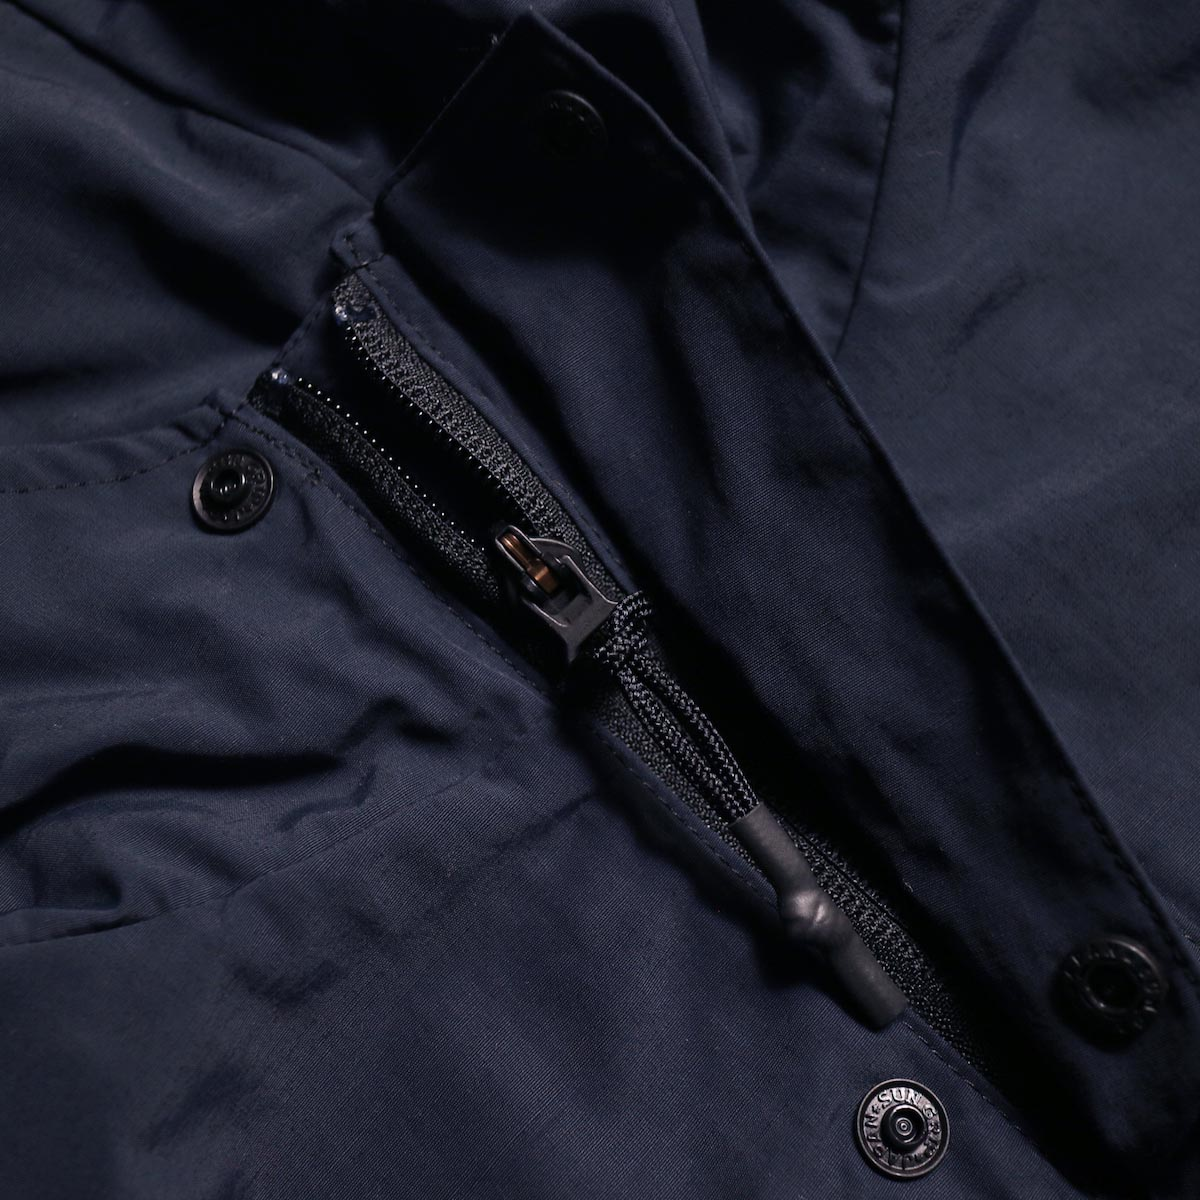 DESCENTE ddd /  PULLOVER JACKET (Black)ジップ